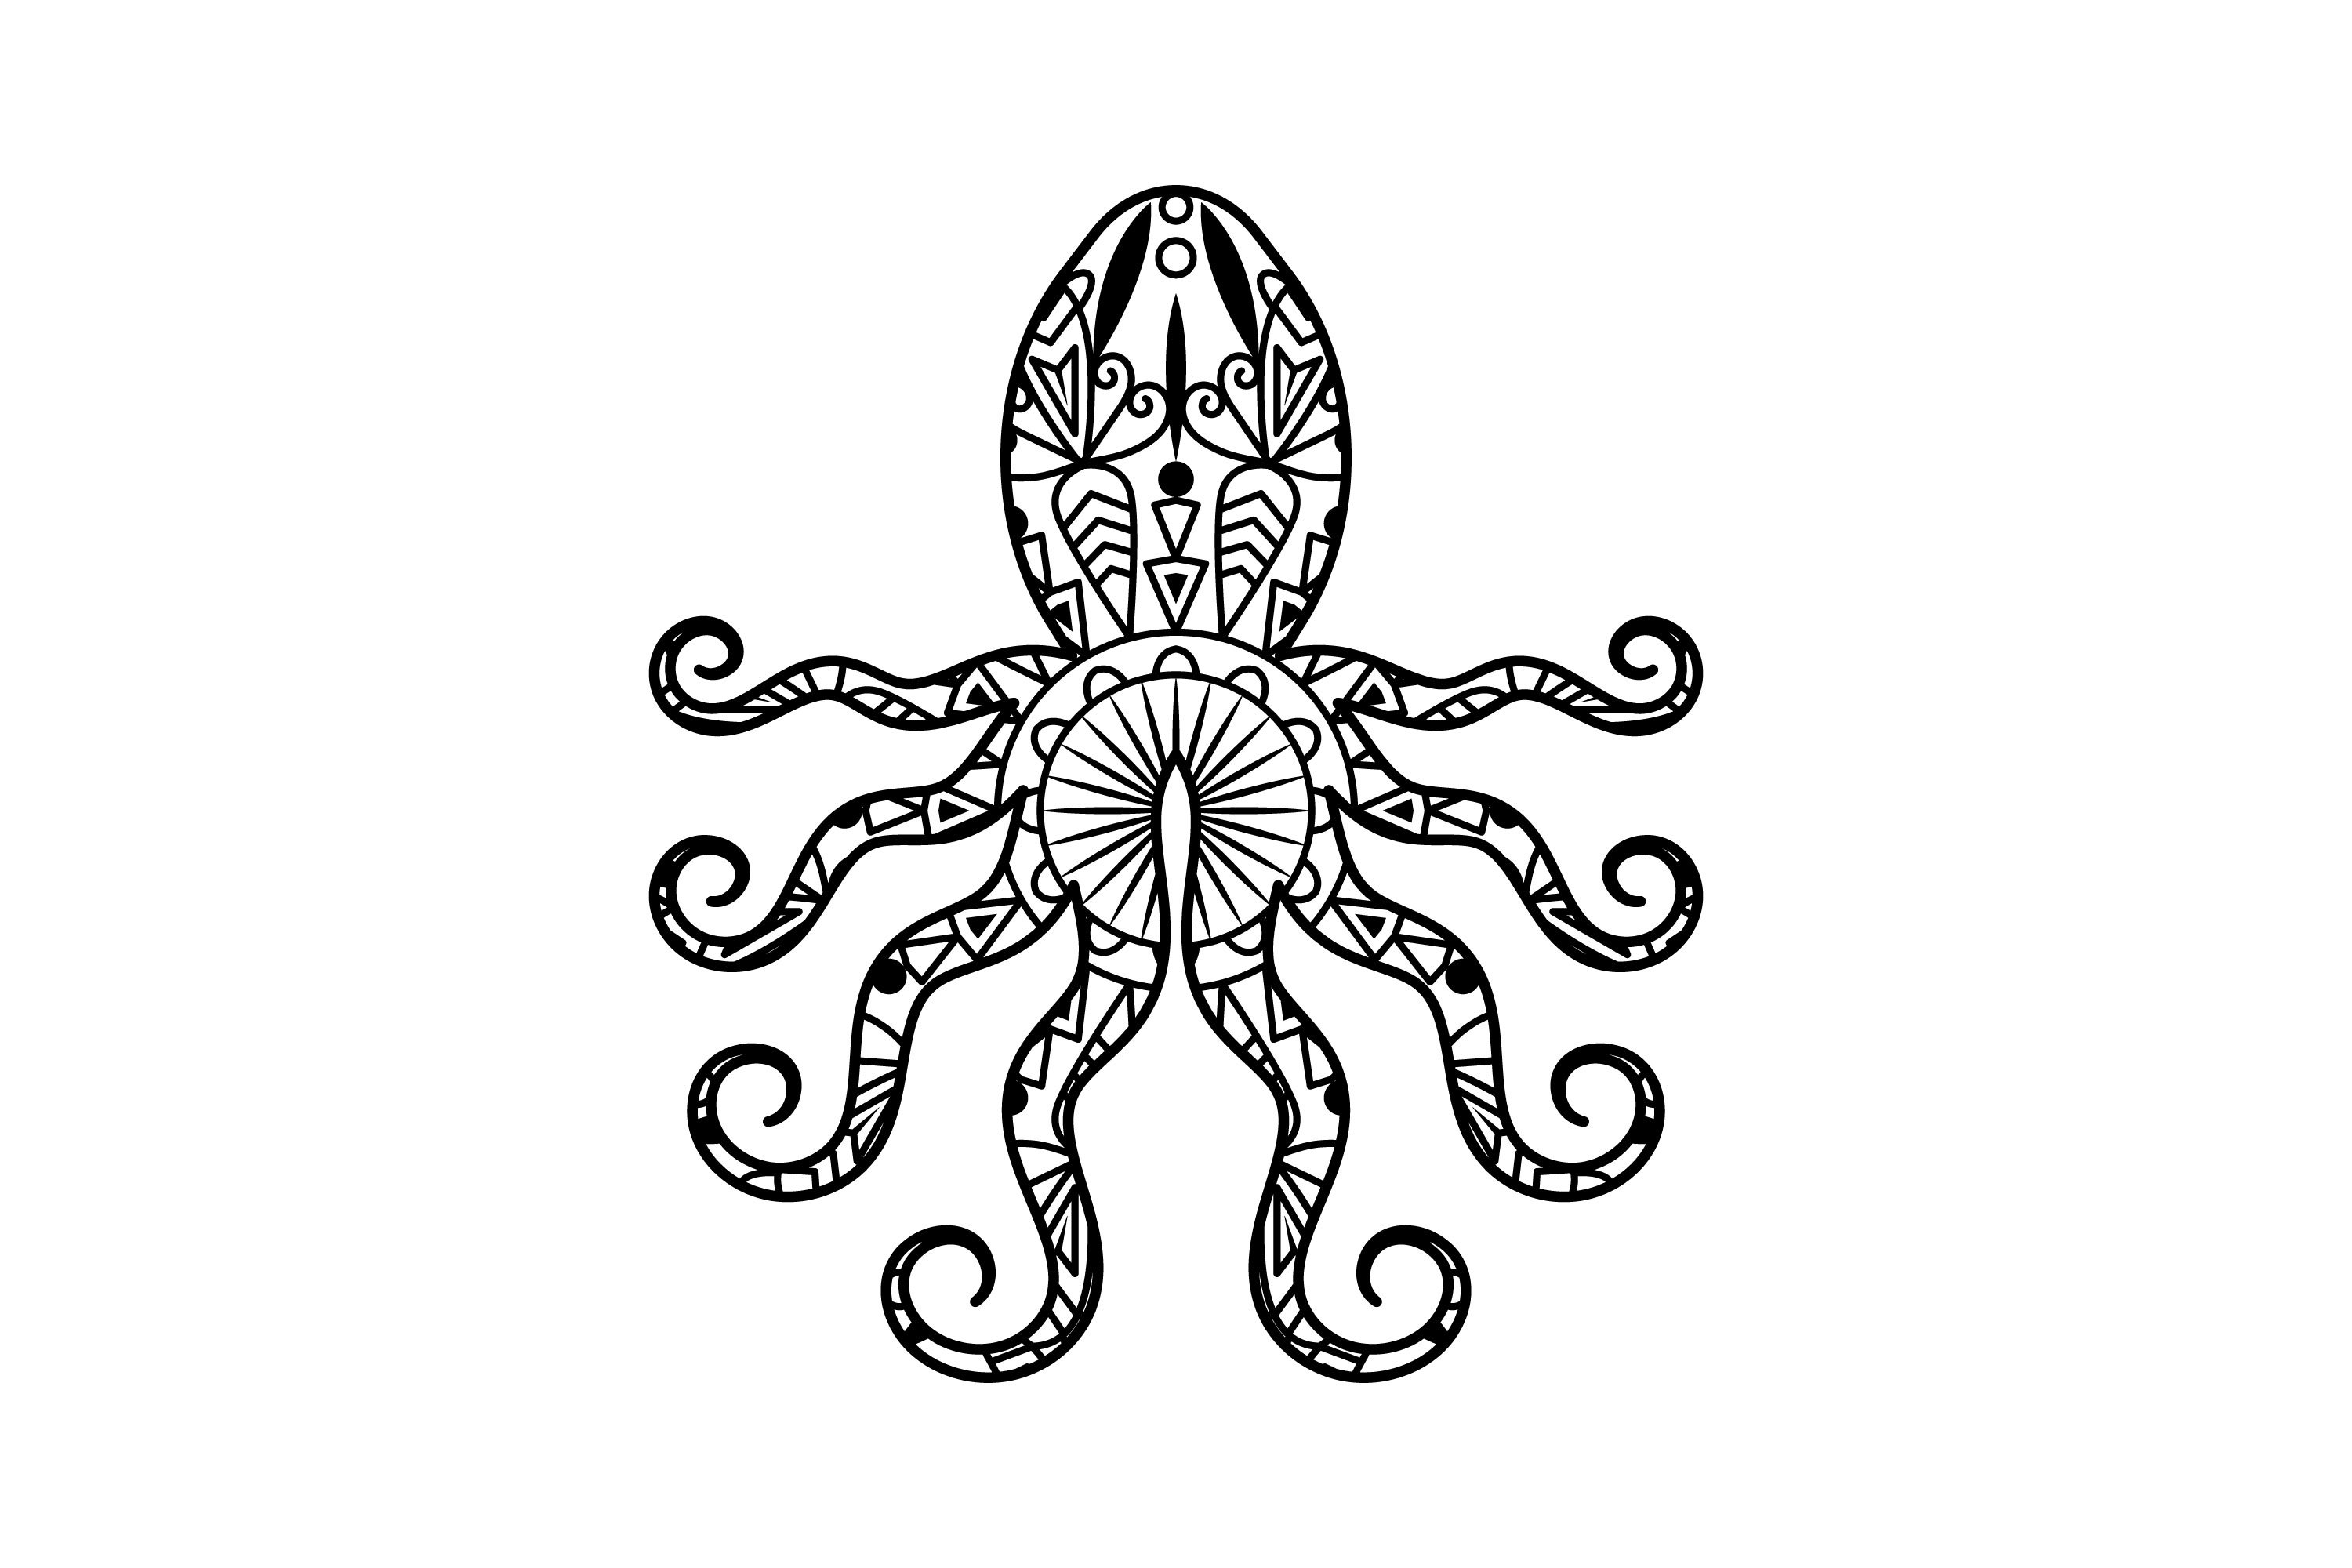 mandala octopus coloring page zentangle octopus in sea for adult coloring page sea mandala octopus page coloring